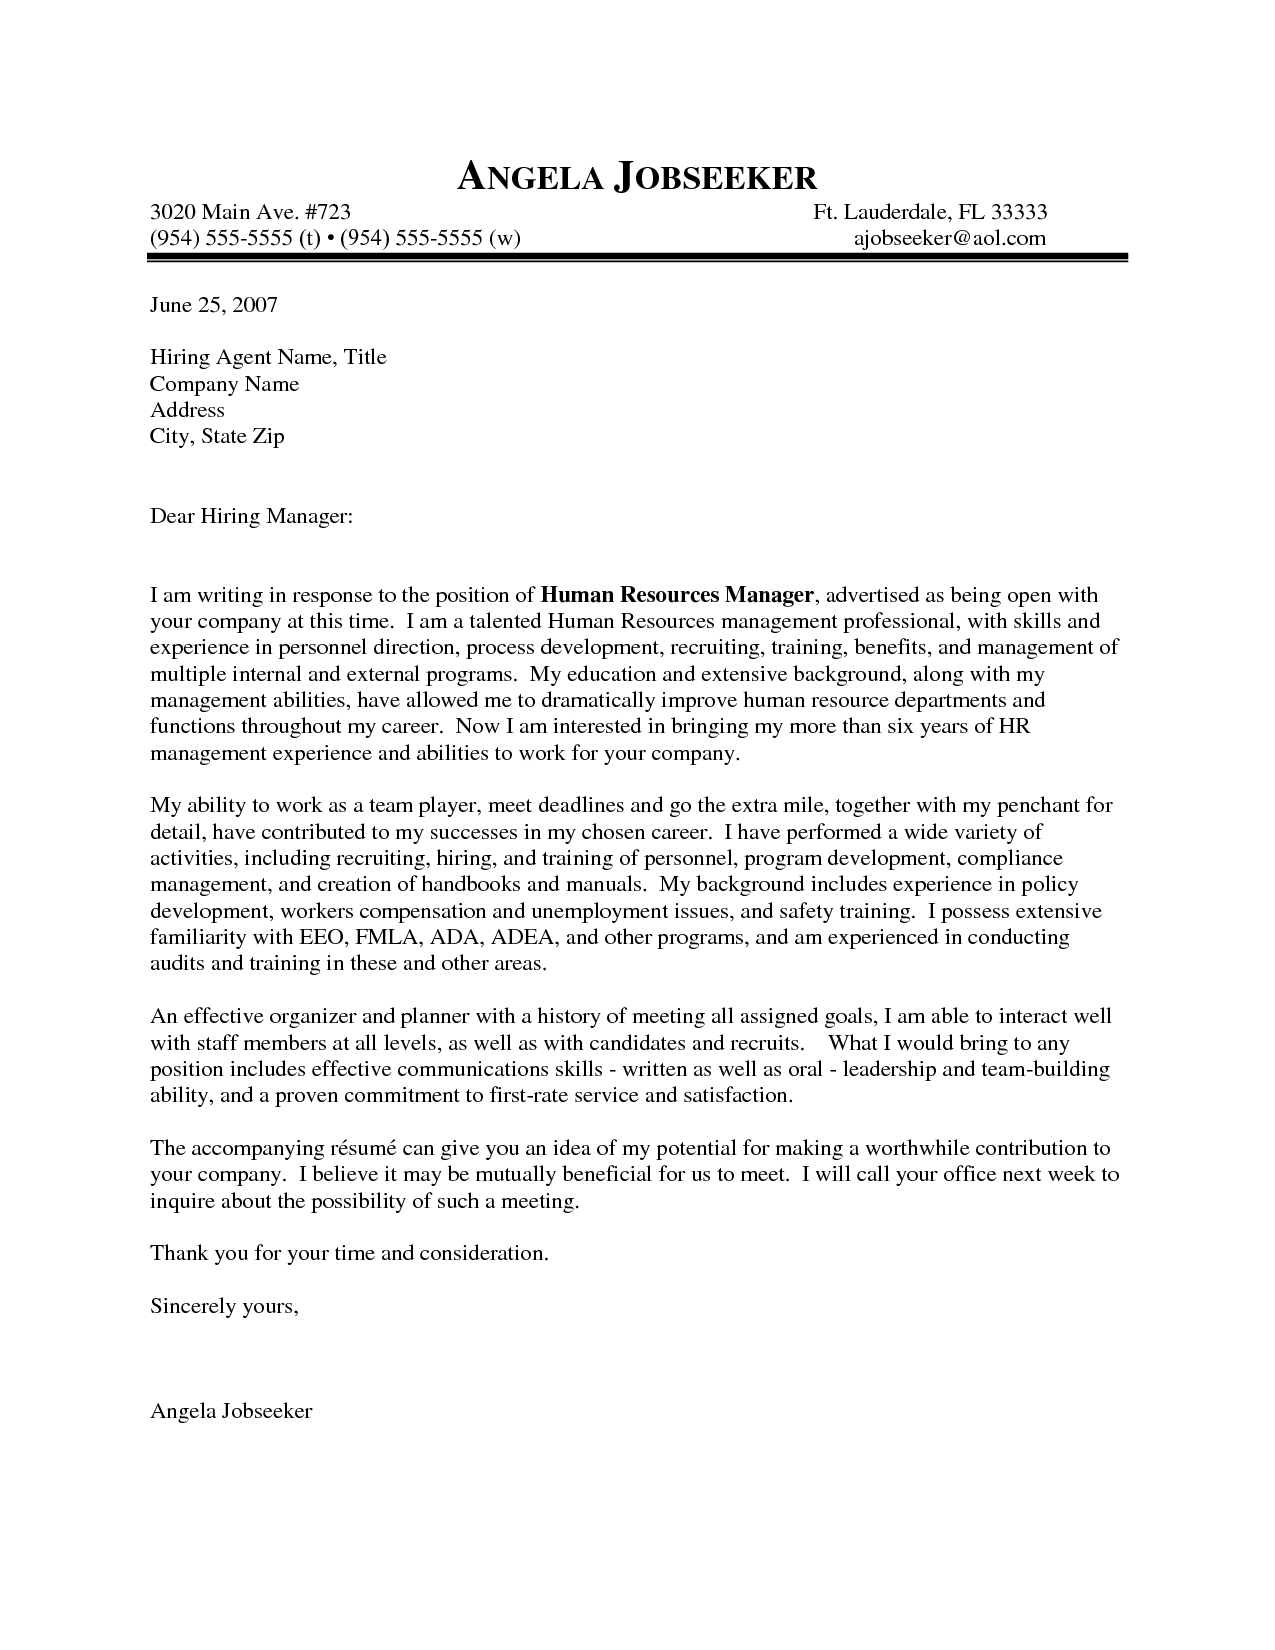 outstanding cover letter examples hr manager cover letter example - How To Make A Resume Cover Letter Examples